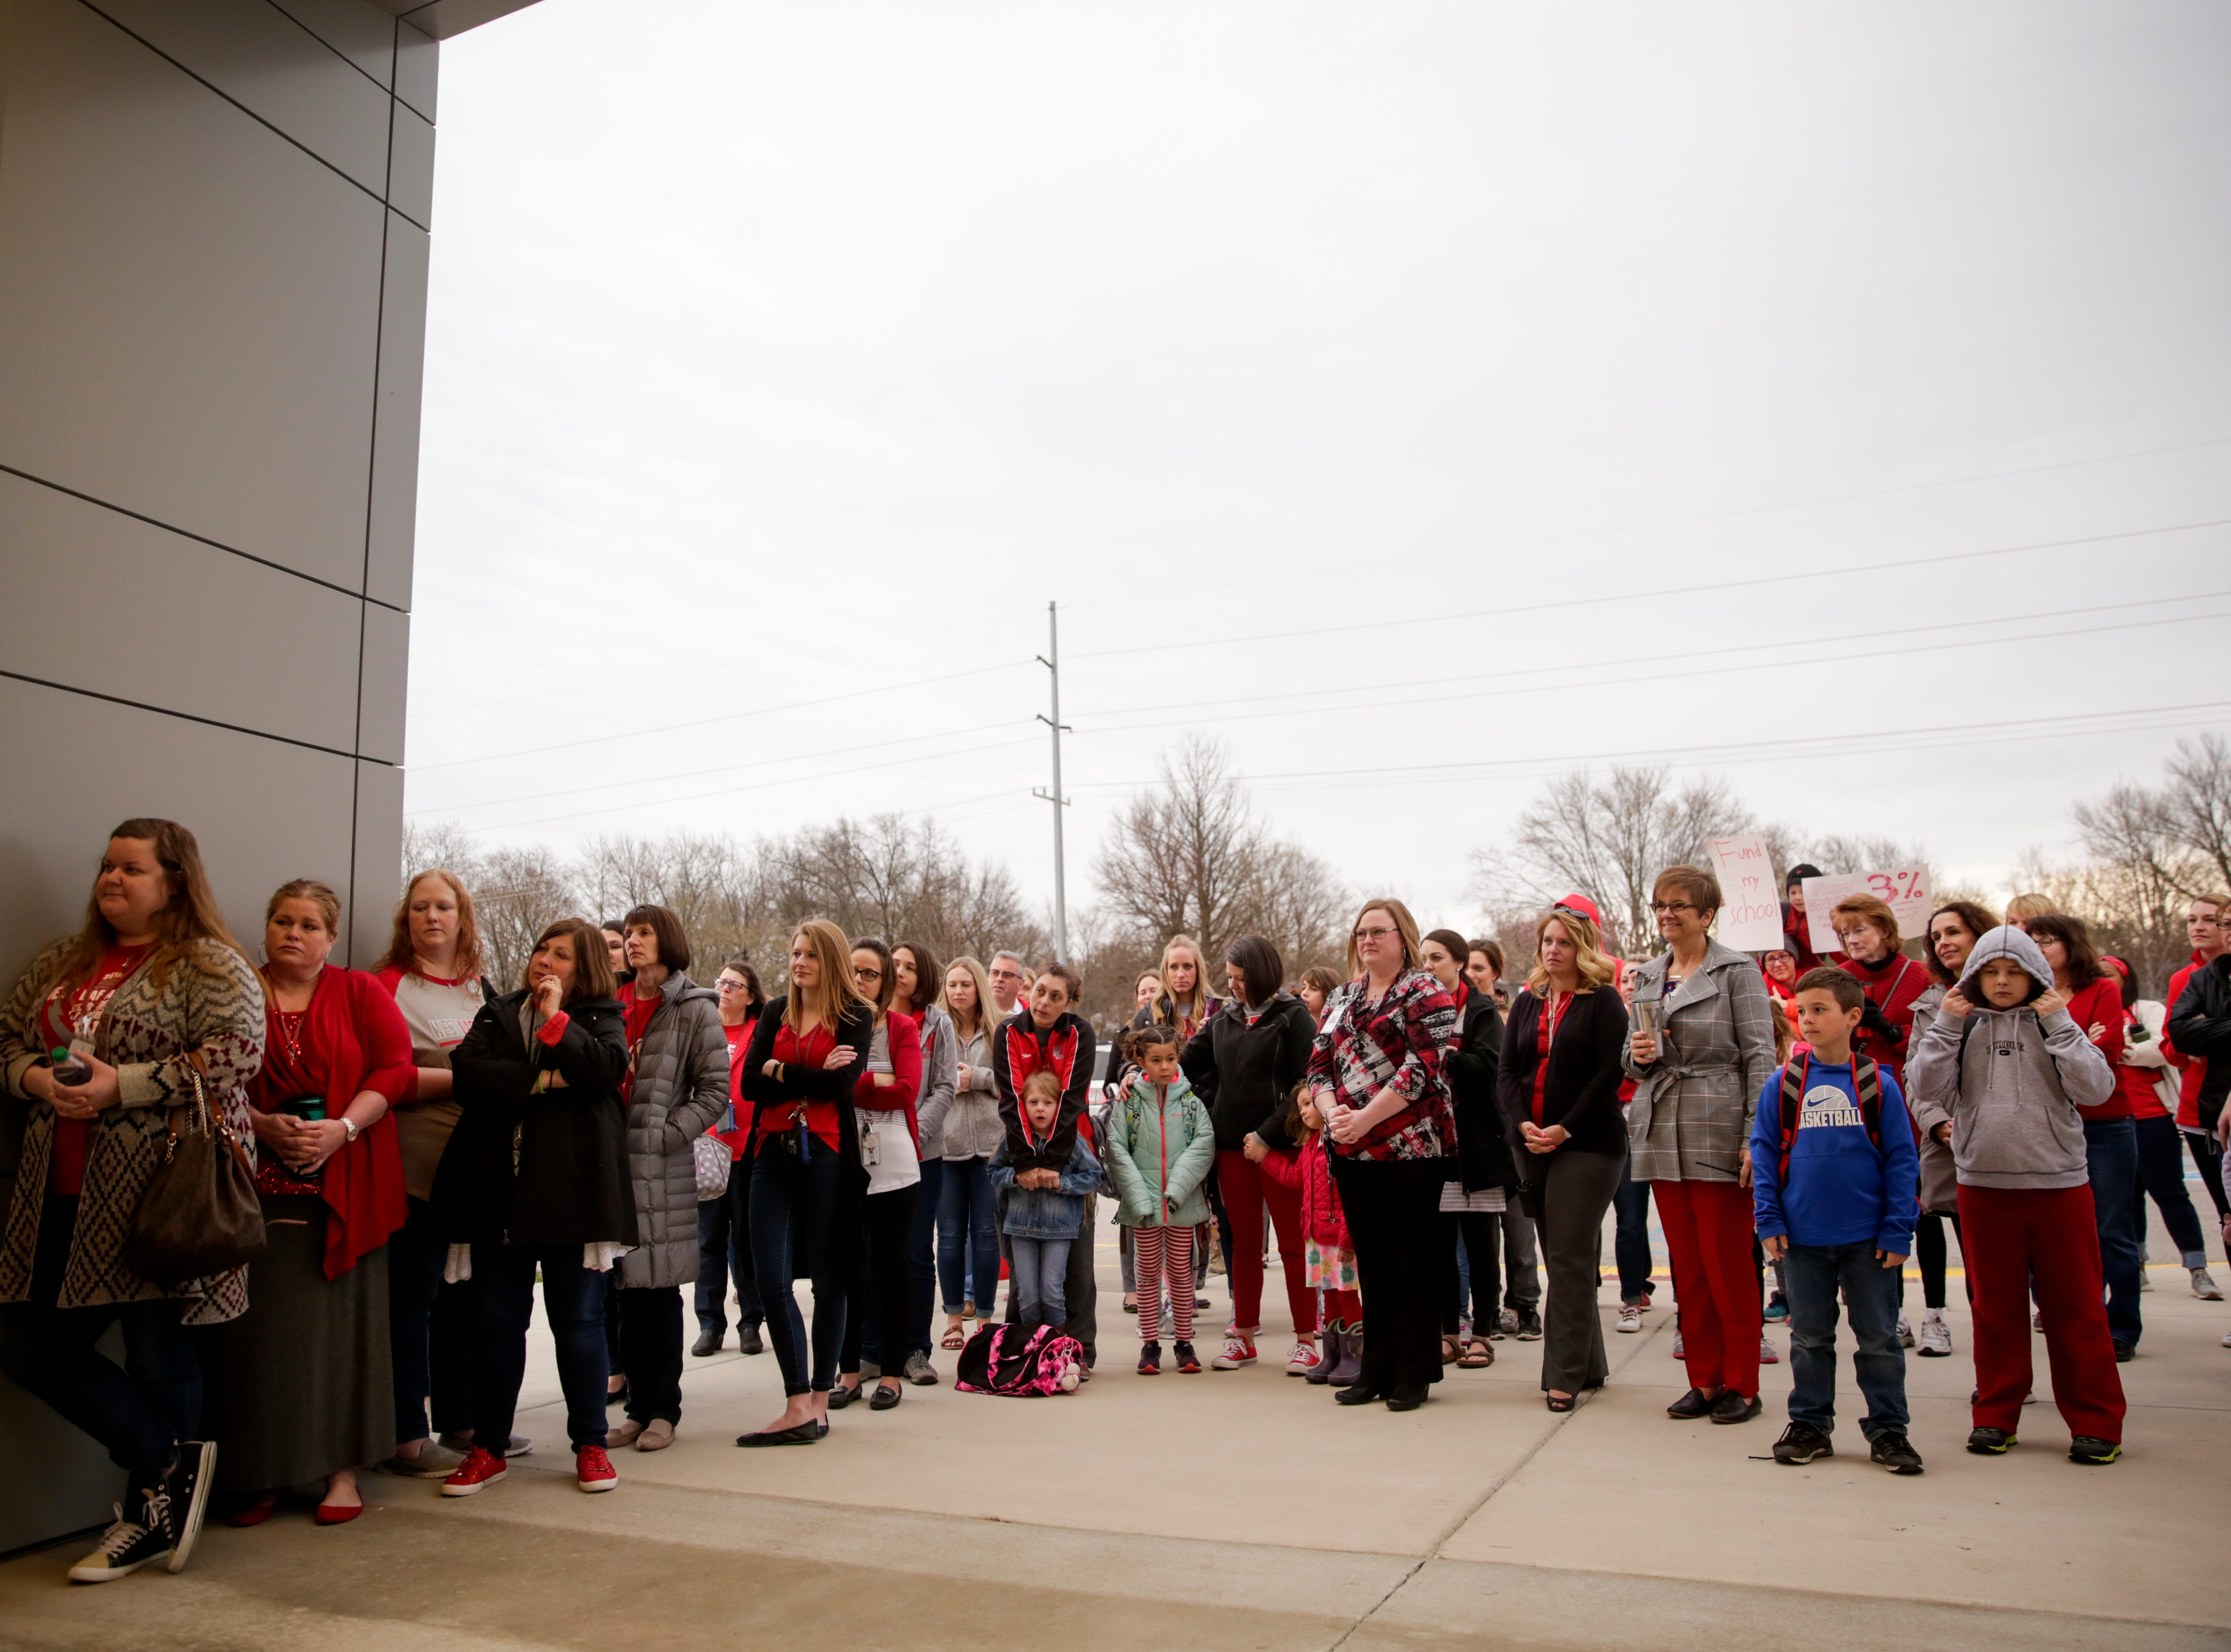 Teachers and community members listen as state Rep. Chris Campbell, D-West Lafayette, speak, Wednesday, April 10, 2019, at Cumberland Elementary School in West Lafayette. Greater Lafayette teachers and community members gathered outside schools before walking in to demand teacher salary raises.(Nikos Frazier   Journal & Courier)